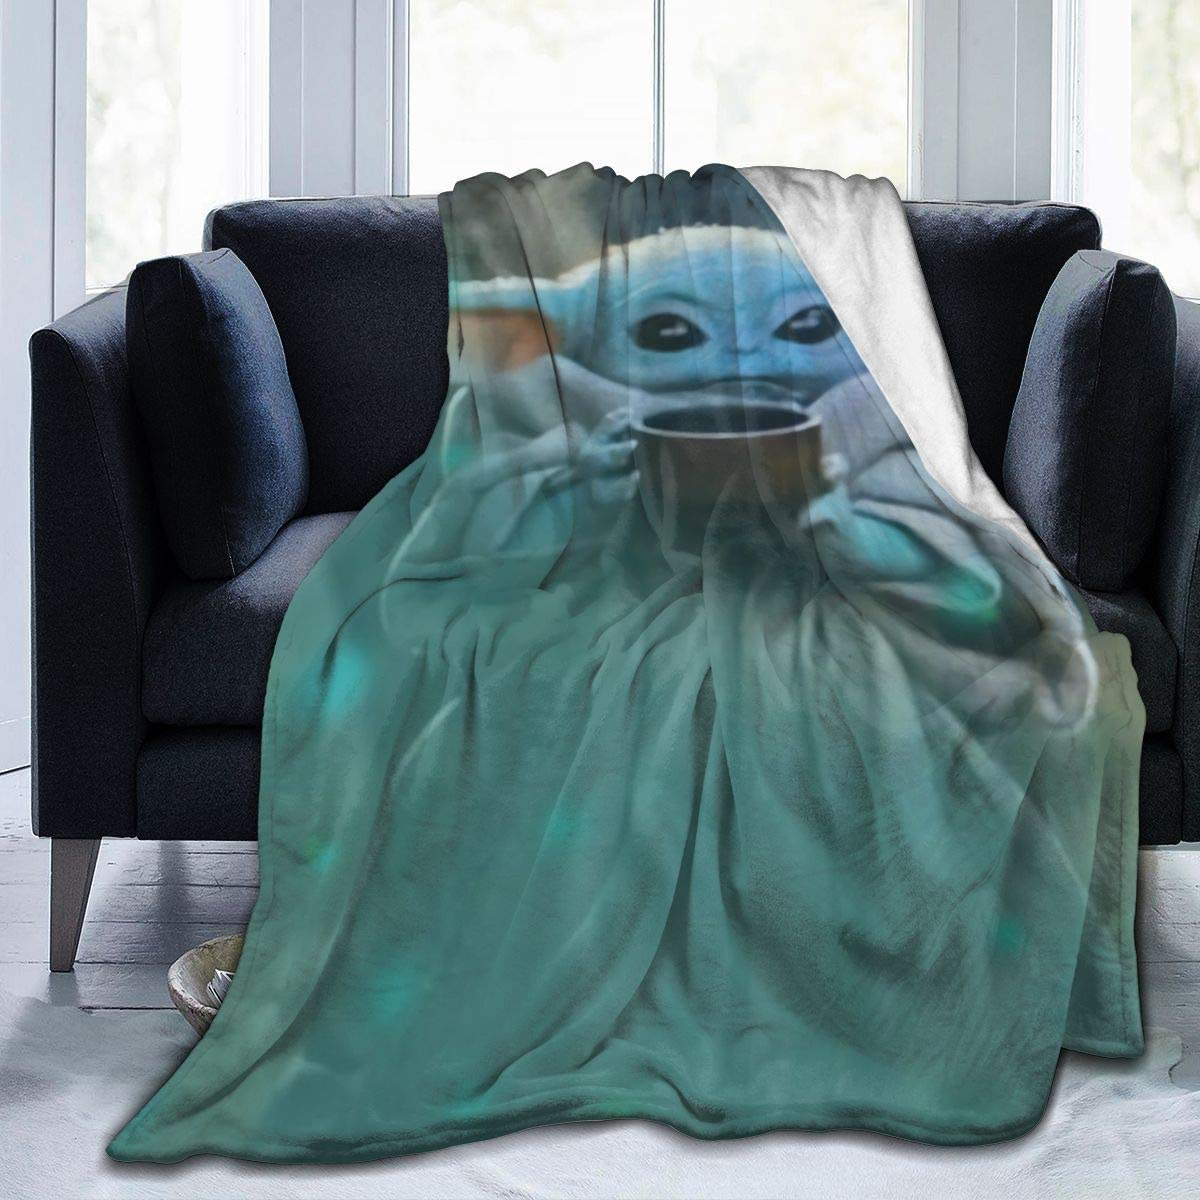 VHOPE Direct sale of manufacturer Blanket Lightweight Regular discount 3D Anti-Ball Printing Polyester Throw